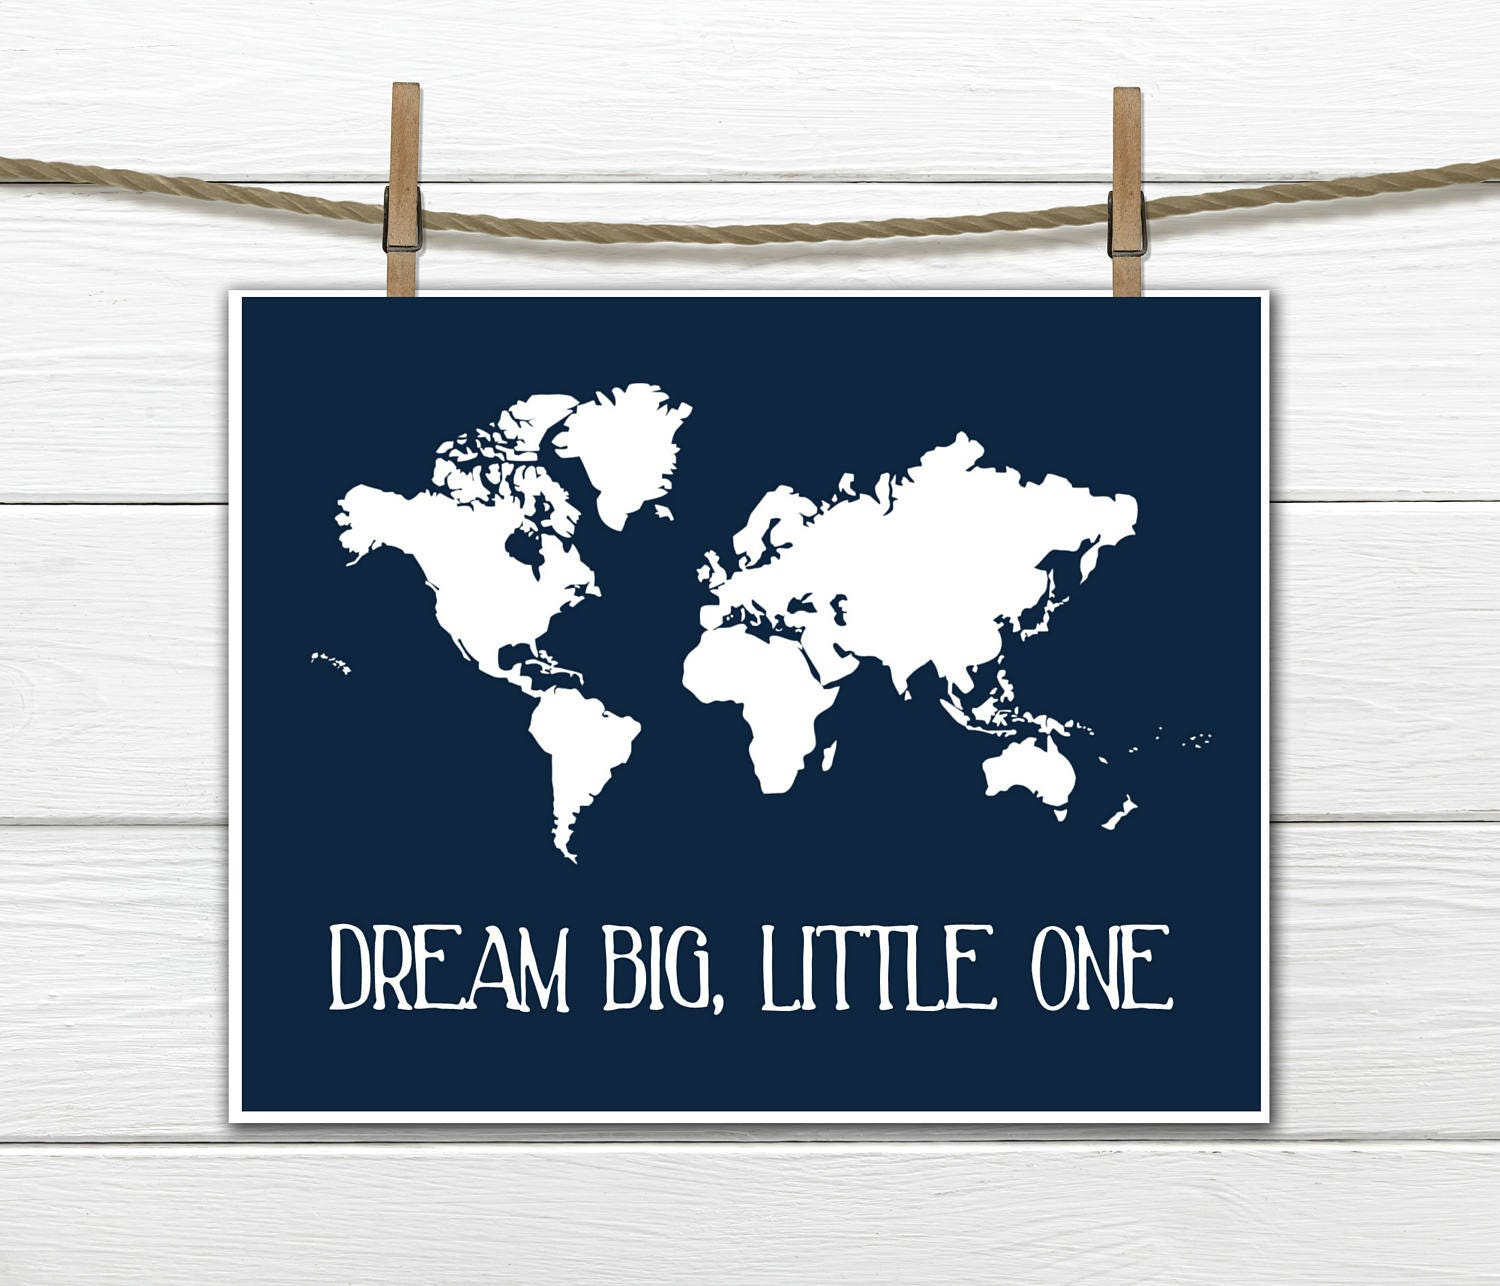 World Map Print Nursery Wall Decor Dream Big Little One - Little big world map